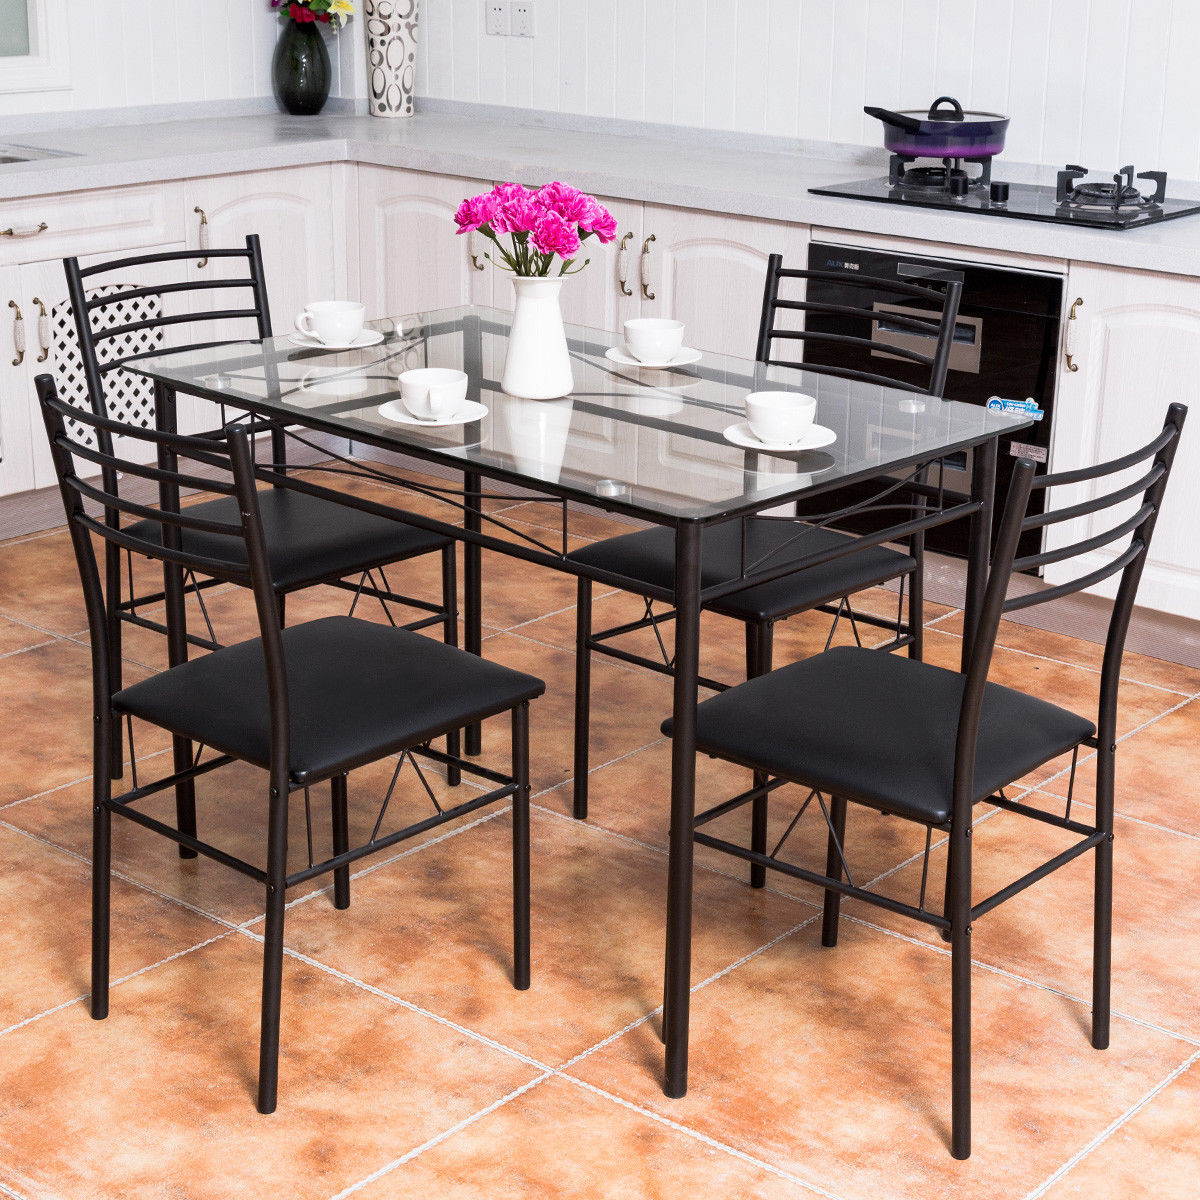 Modern Dining Room Furniture Us 169 99 Giantex 5pc Dining Set Modern Dining Room Tempered Glass Top Table 4 Upholstered Dining Chairs Kitchen Furniture Hw56030 In Dining Room